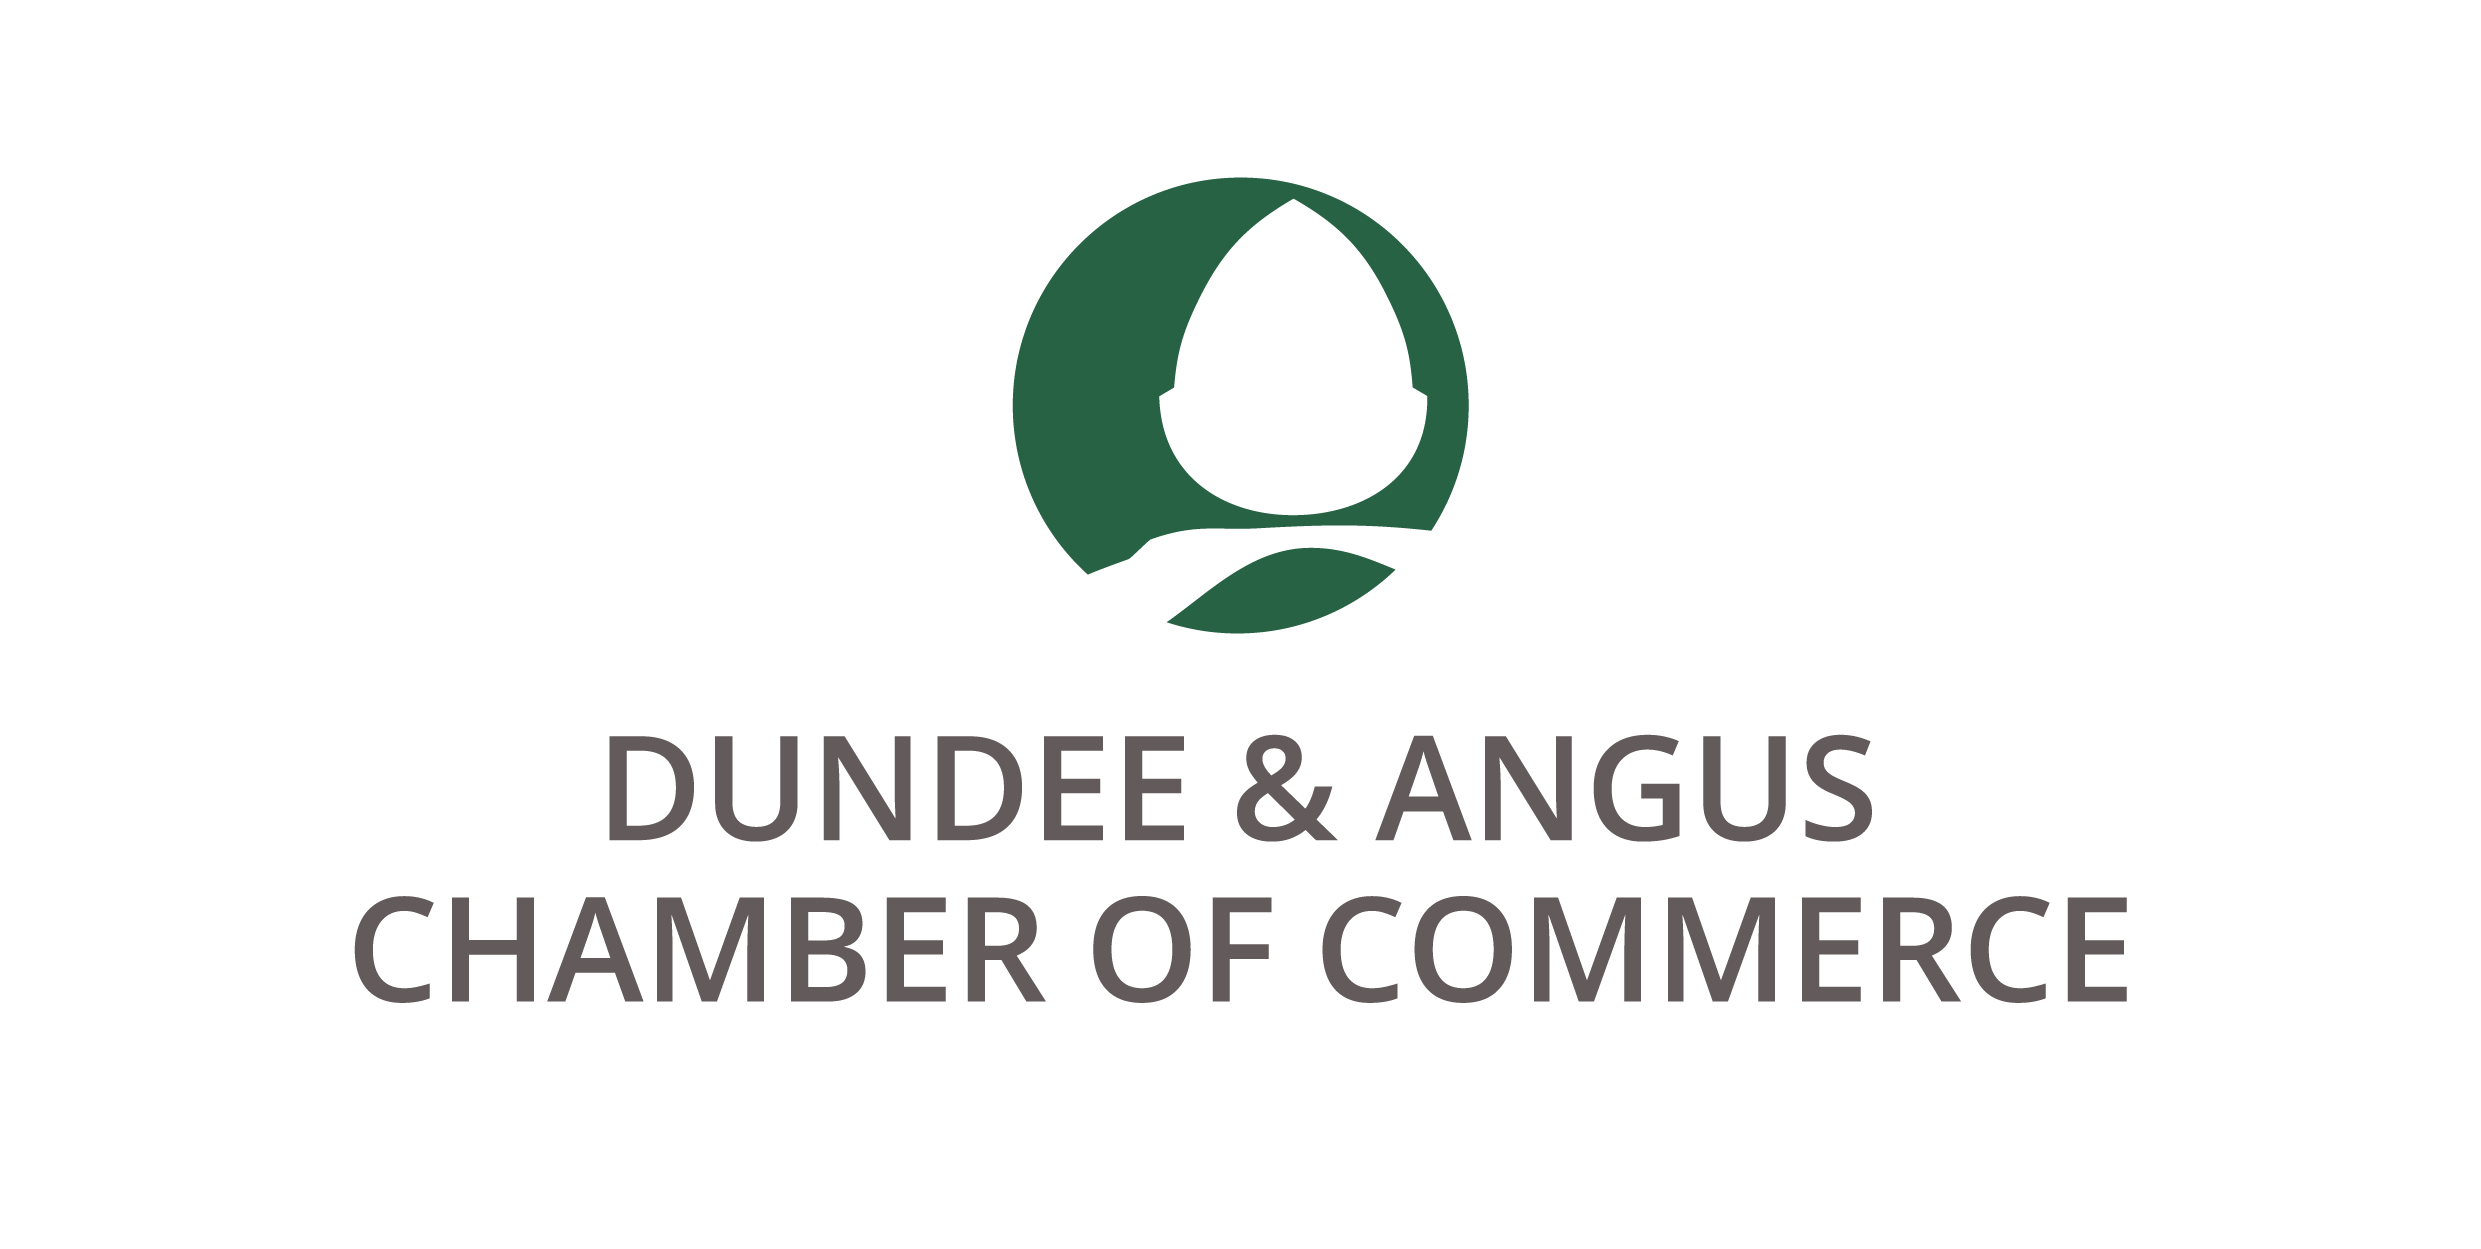 Dundee and Angus Chamber of Commerce logo